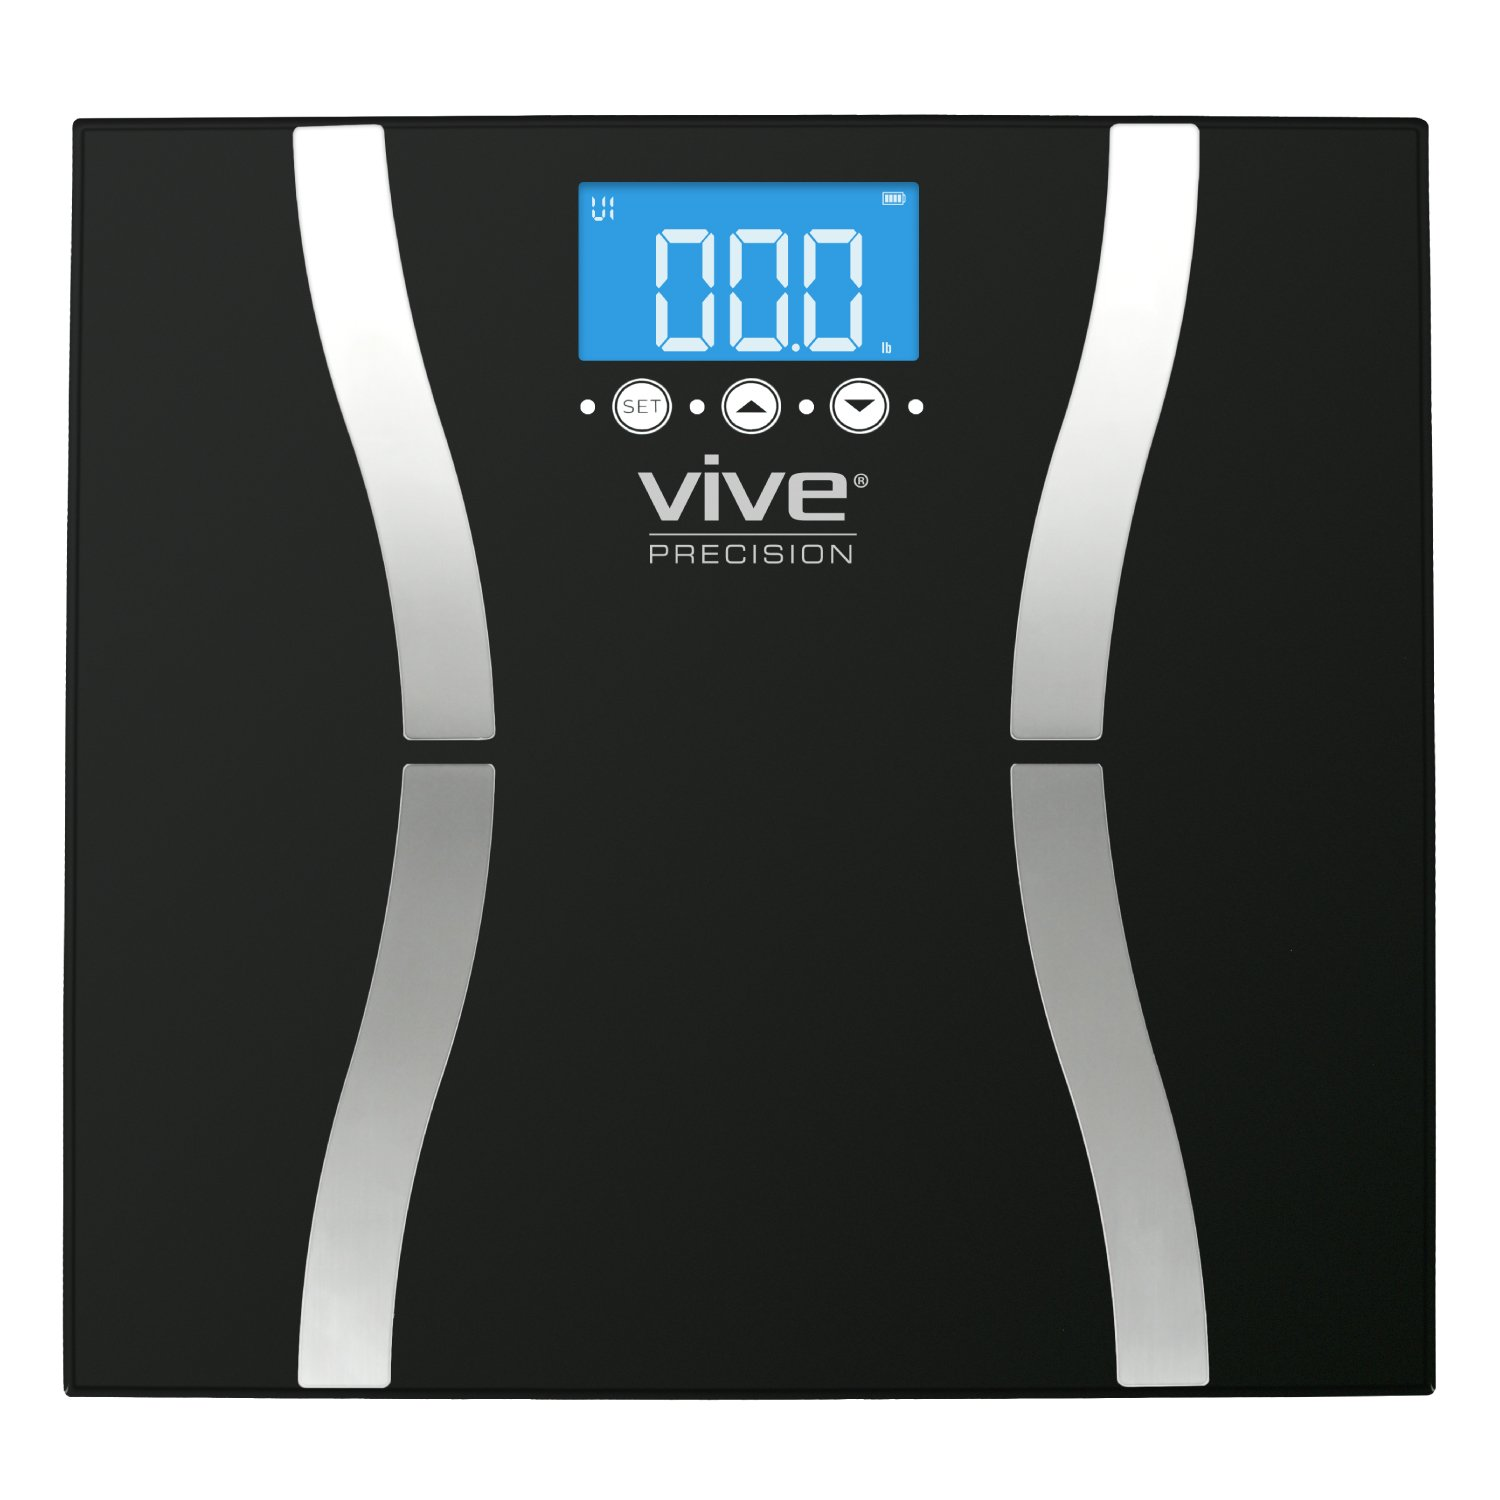 Body Fat Scale by Vive Precision - Digital Bathroom Scale Calculates and Analyzes Weight and Electronic Body Fat Composition Percentage - Accurate Reliable Home Measurement for Men and Women (Black)